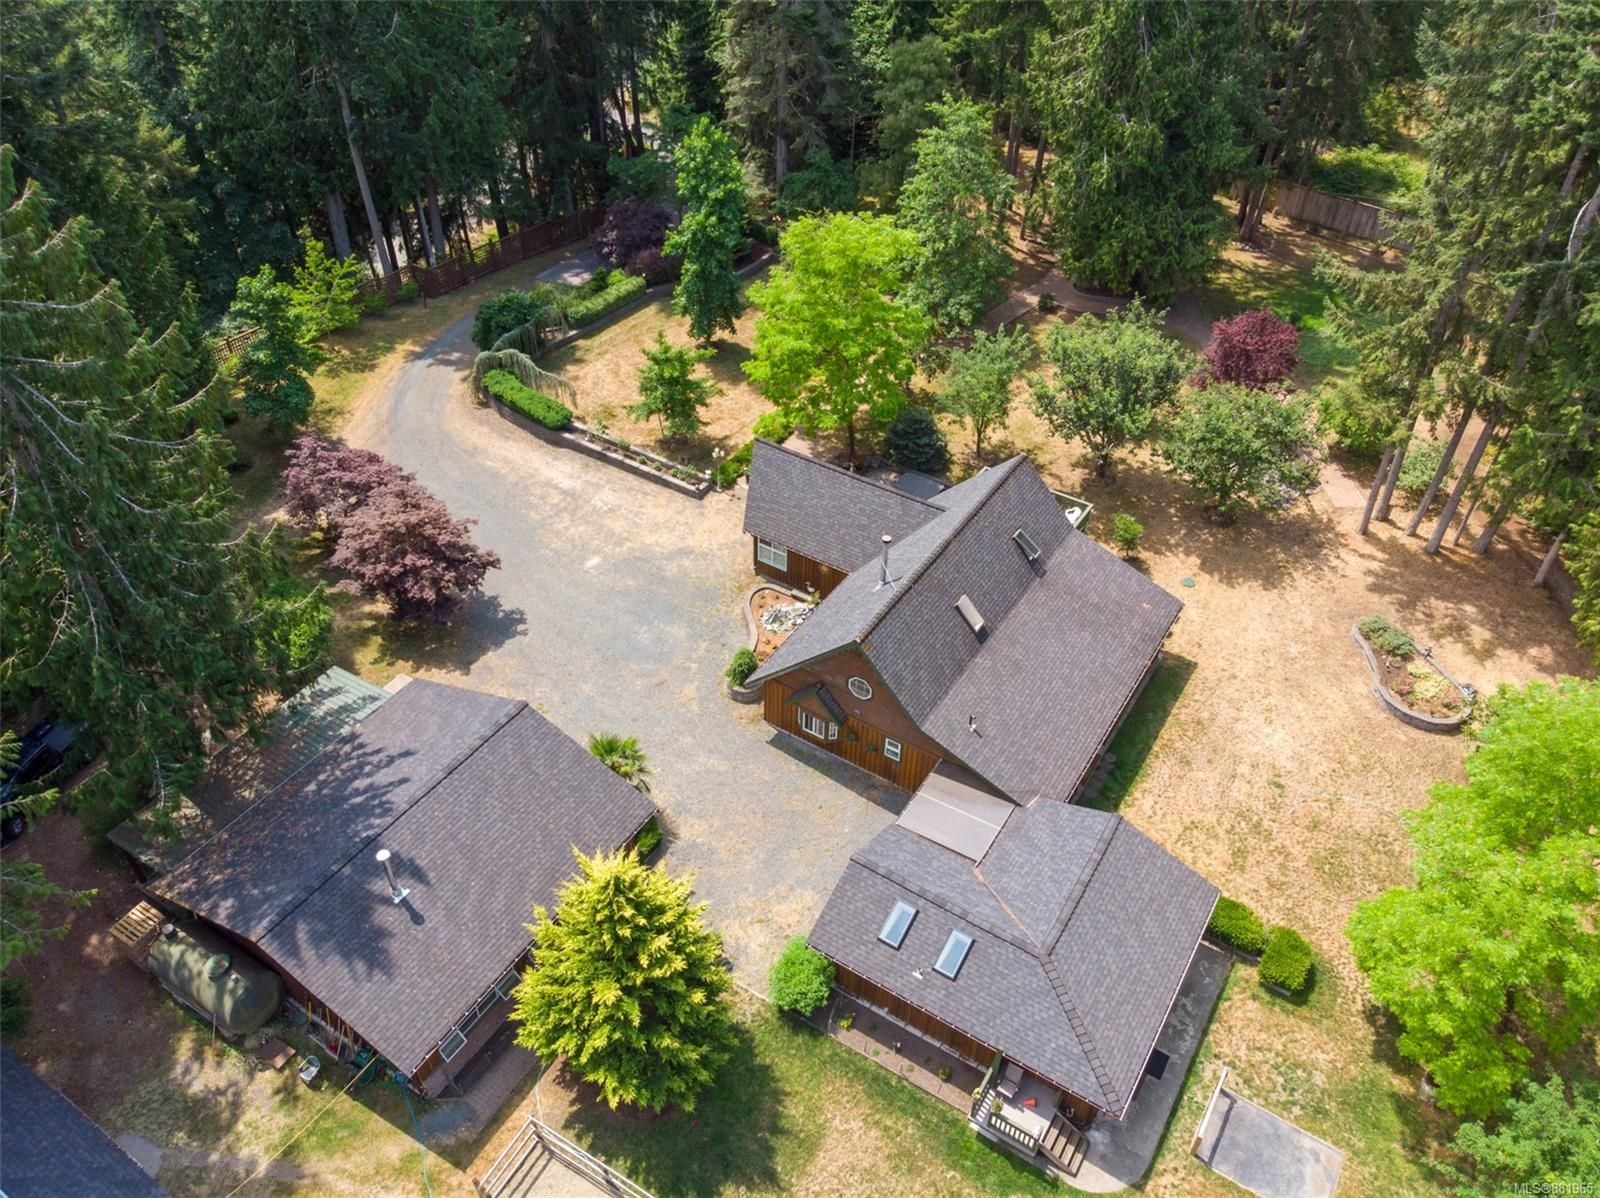 Main Photo: 727 Englishman River Rd in : PQ Errington/Coombs/Hilliers House for sale (Parksville/Qualicum)  : MLS®# 881965